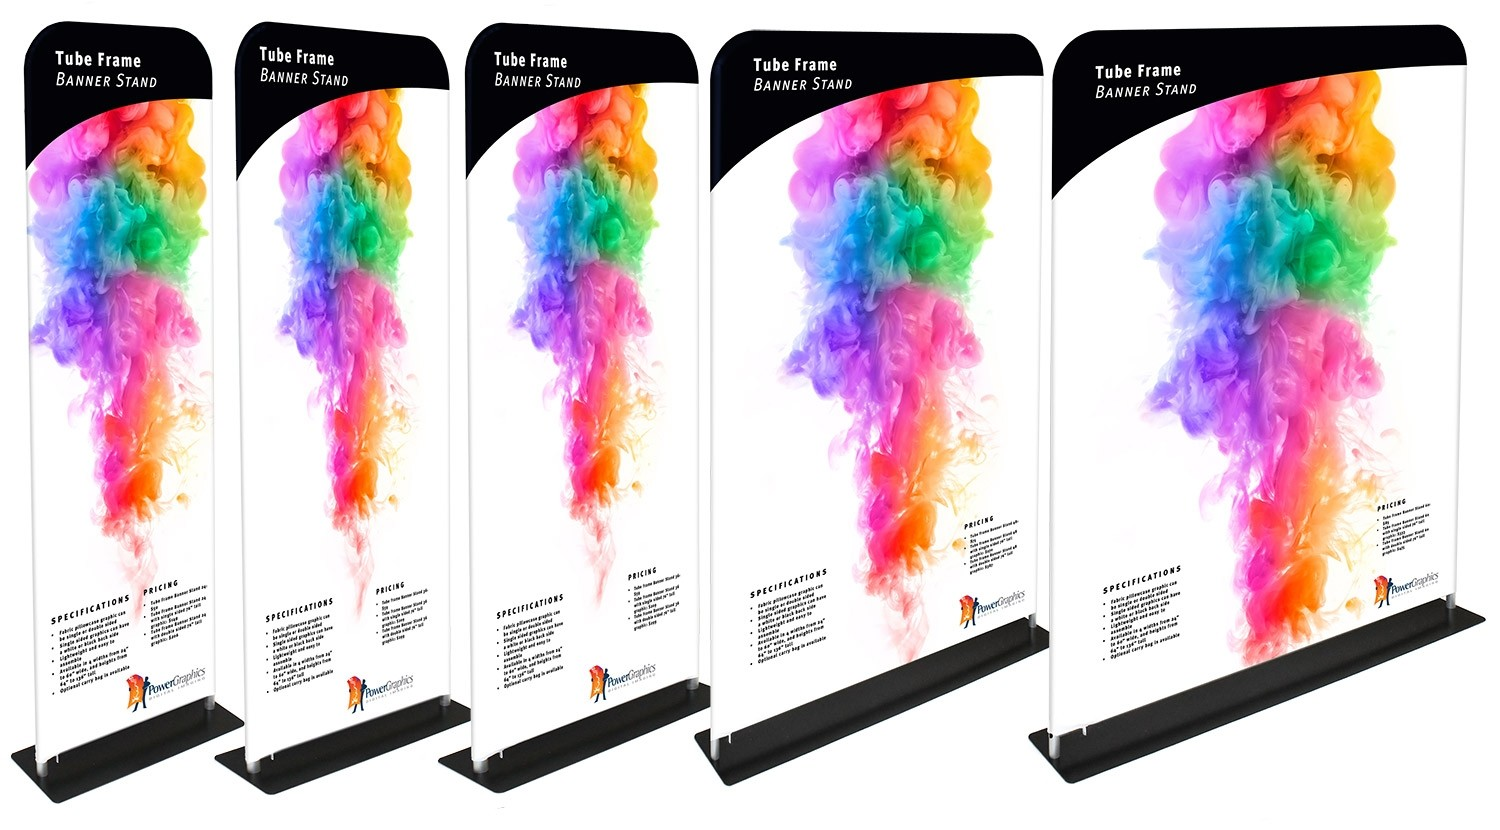 Tube Frame Banner 30 Tension Fabric Display